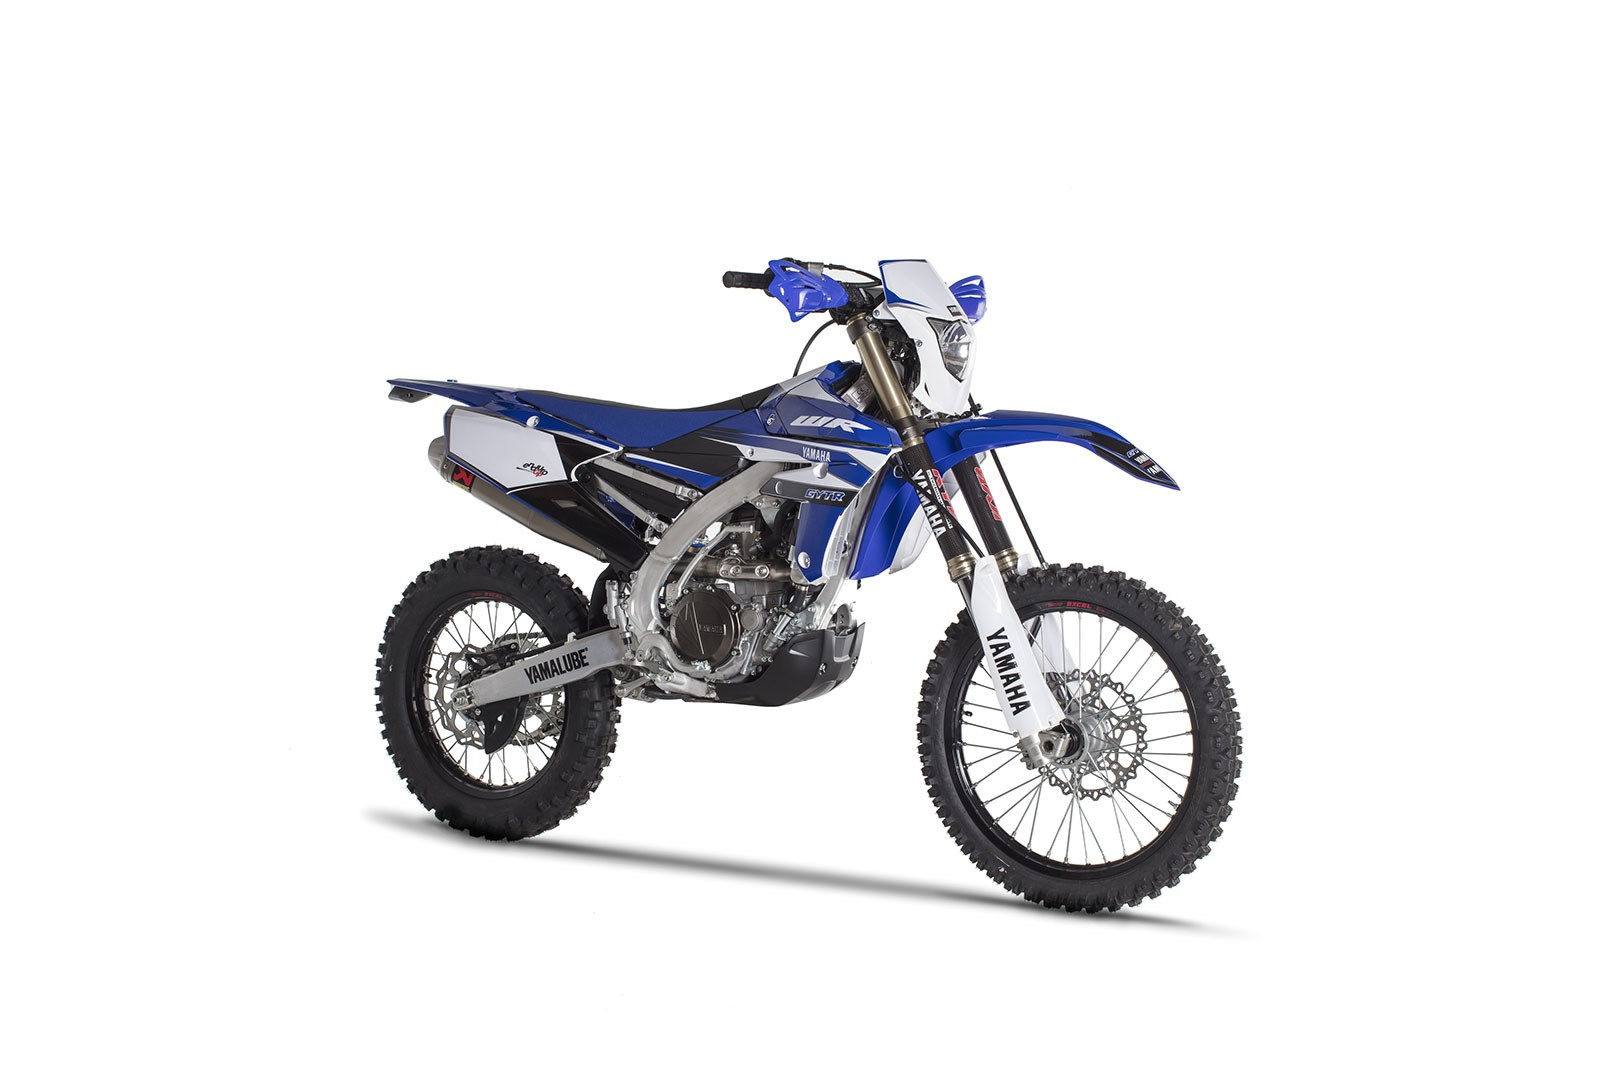 Yamaha announce limited edition EnduroGP models